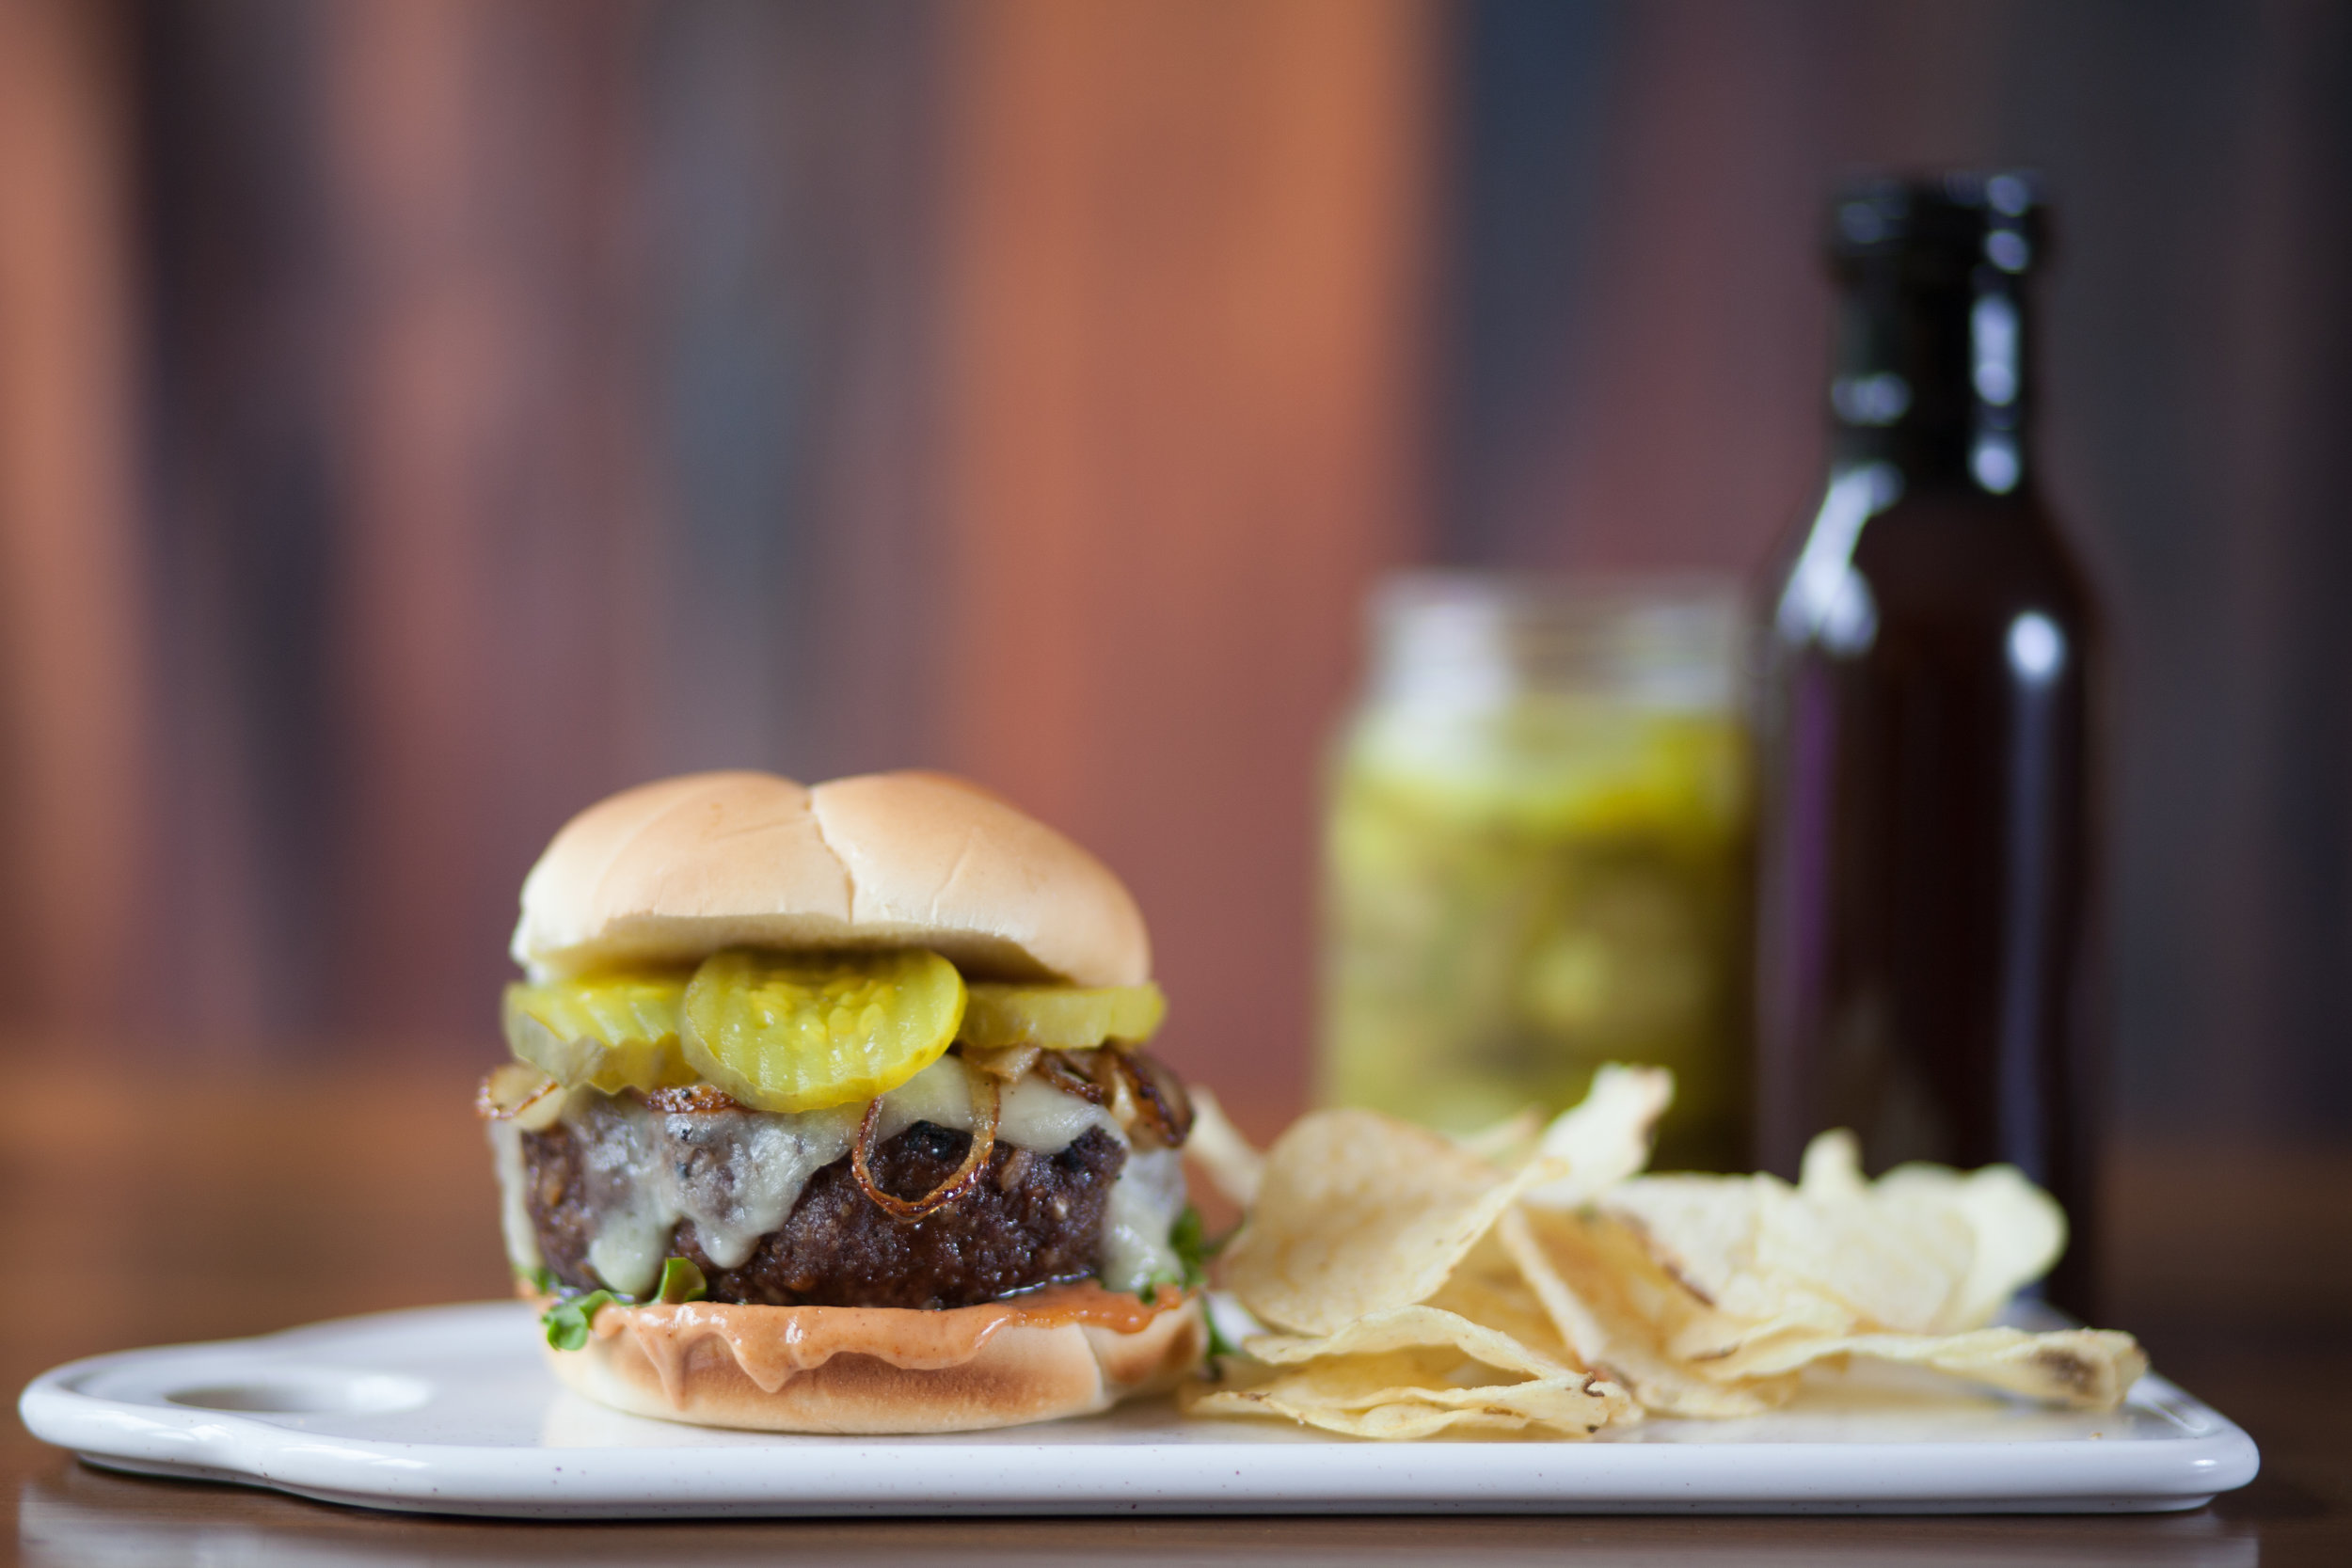 French Onion Burger with Chips - The salty, cheesy satisfaction of a French onion soup...but on a burger. Packed between the full-flavored Aunt Millie's Hearth Classic Hamburger buns. It just has that certain 'je ne sais quoi' about it.